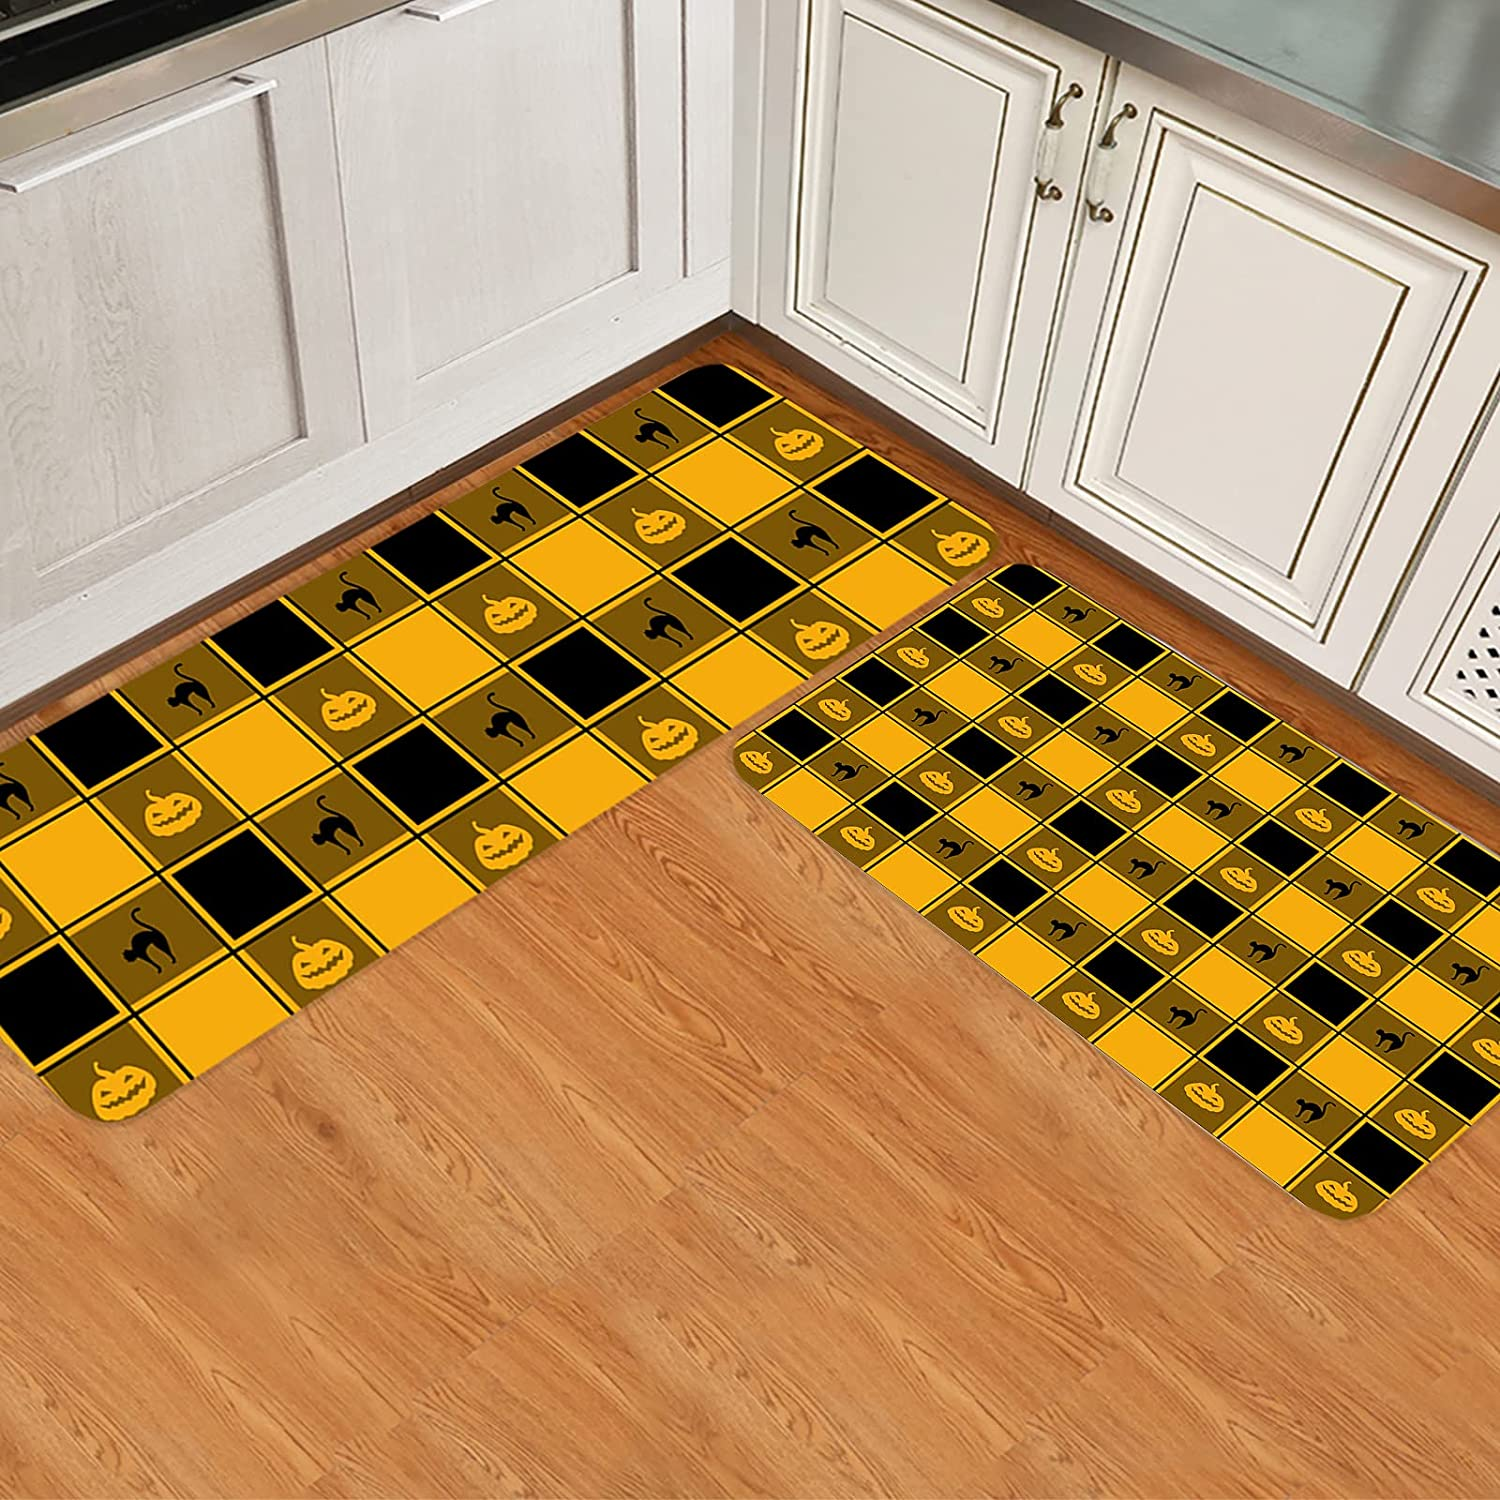 ARTSHOWING Limited Special Price Halloween Recommended 2 Pieces Set Kitchen Non Mats for Sl Floor